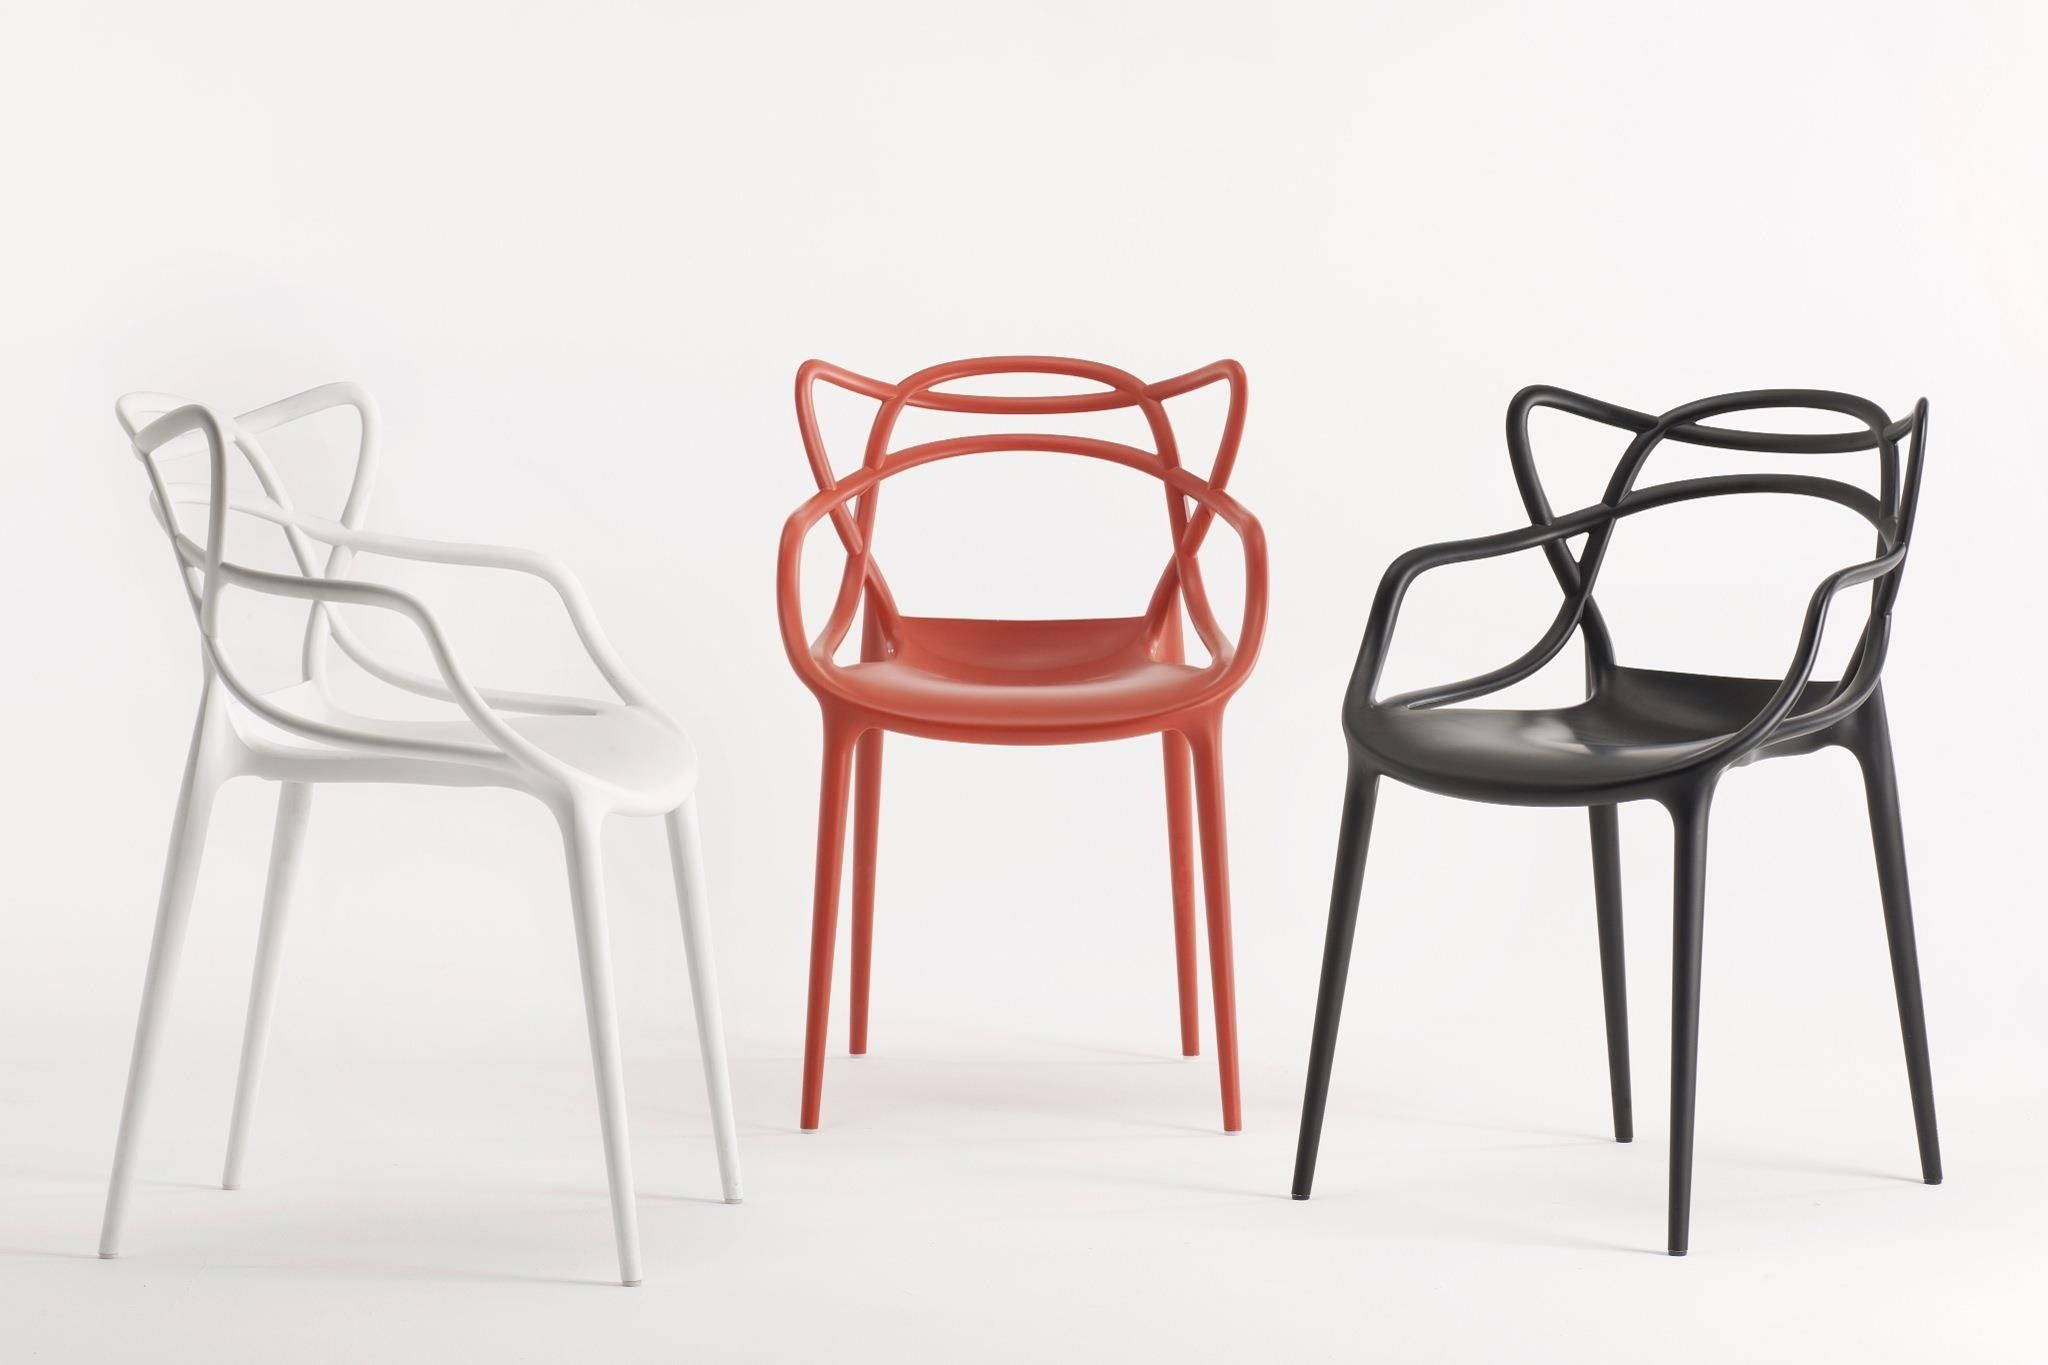 Philippe Starck and Eugeni Quitlet s curvaceous Masters chair pays homage to contemporary design icons Arne Jacobsen Eero Saarinen and Charles Eames